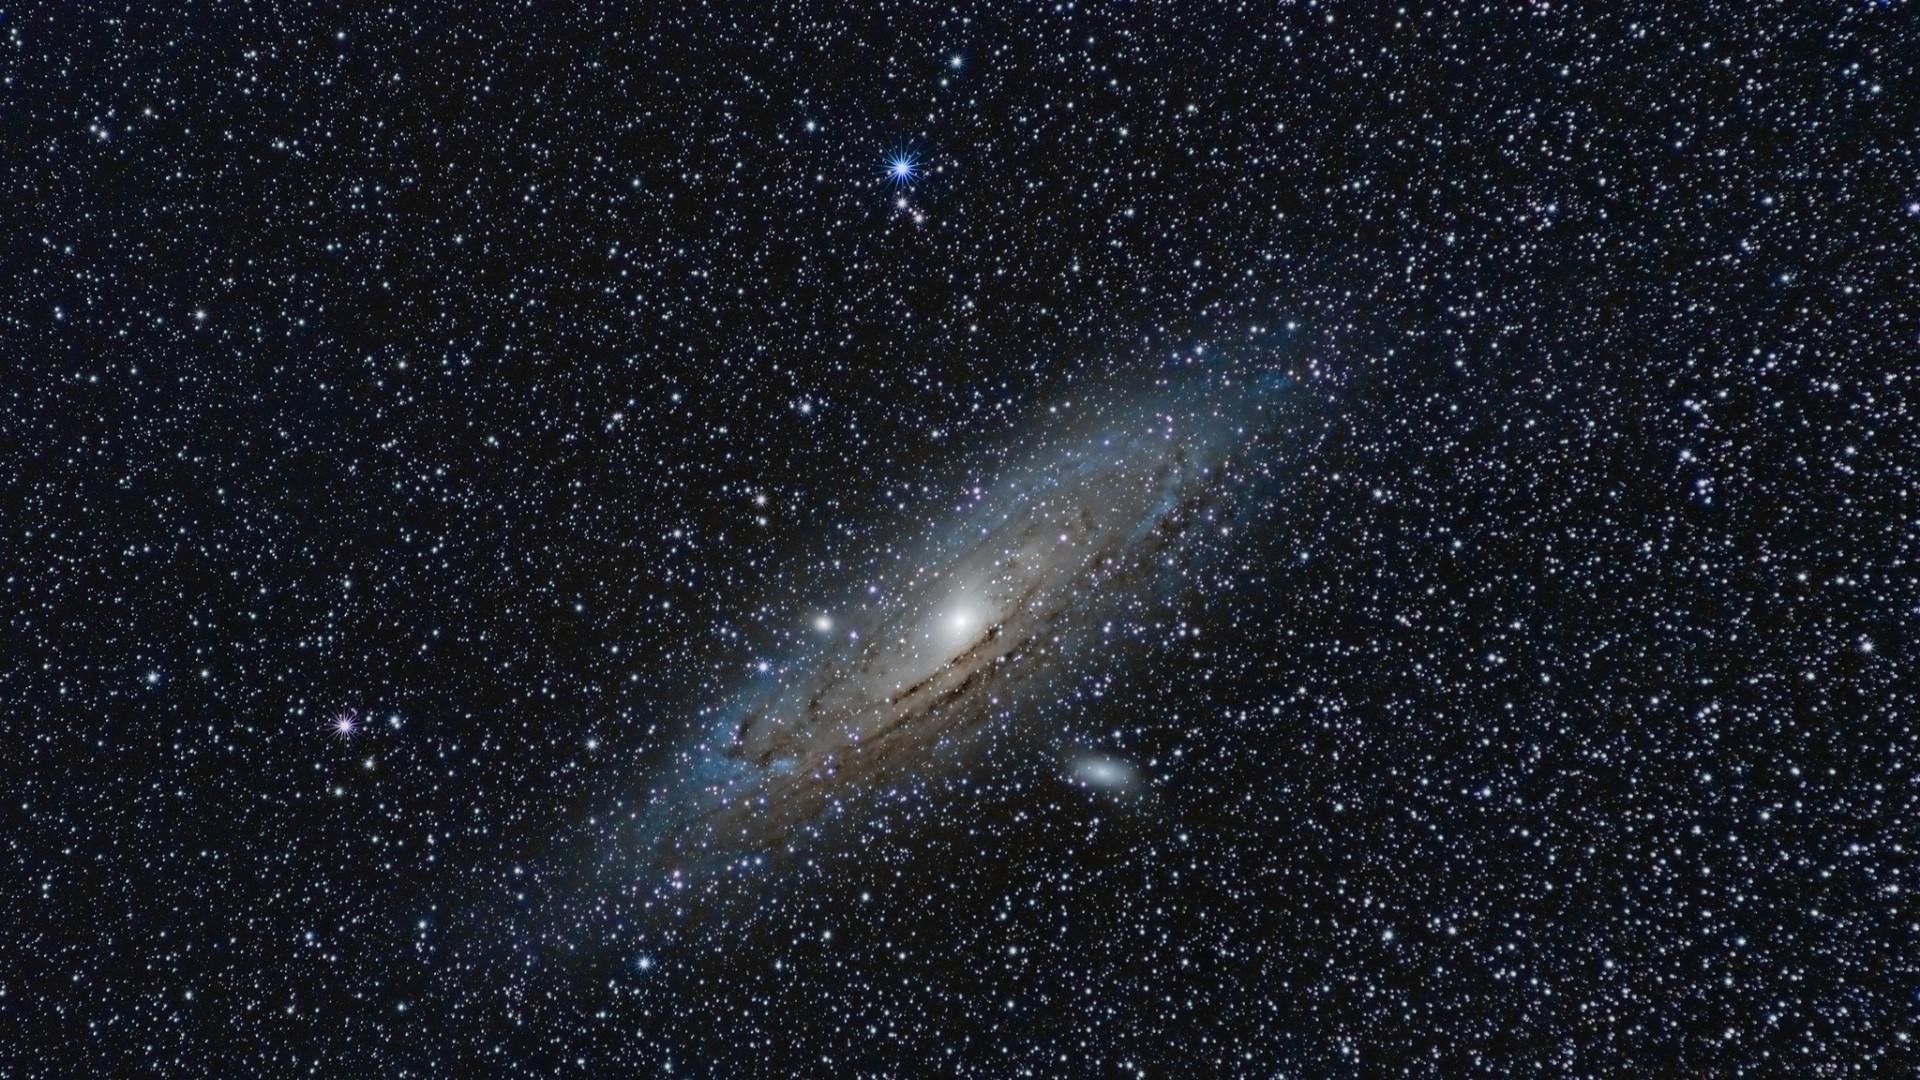 1680x1050 Download Mac OS X Mountain Lion Andromeda Galaxy Wallpaper